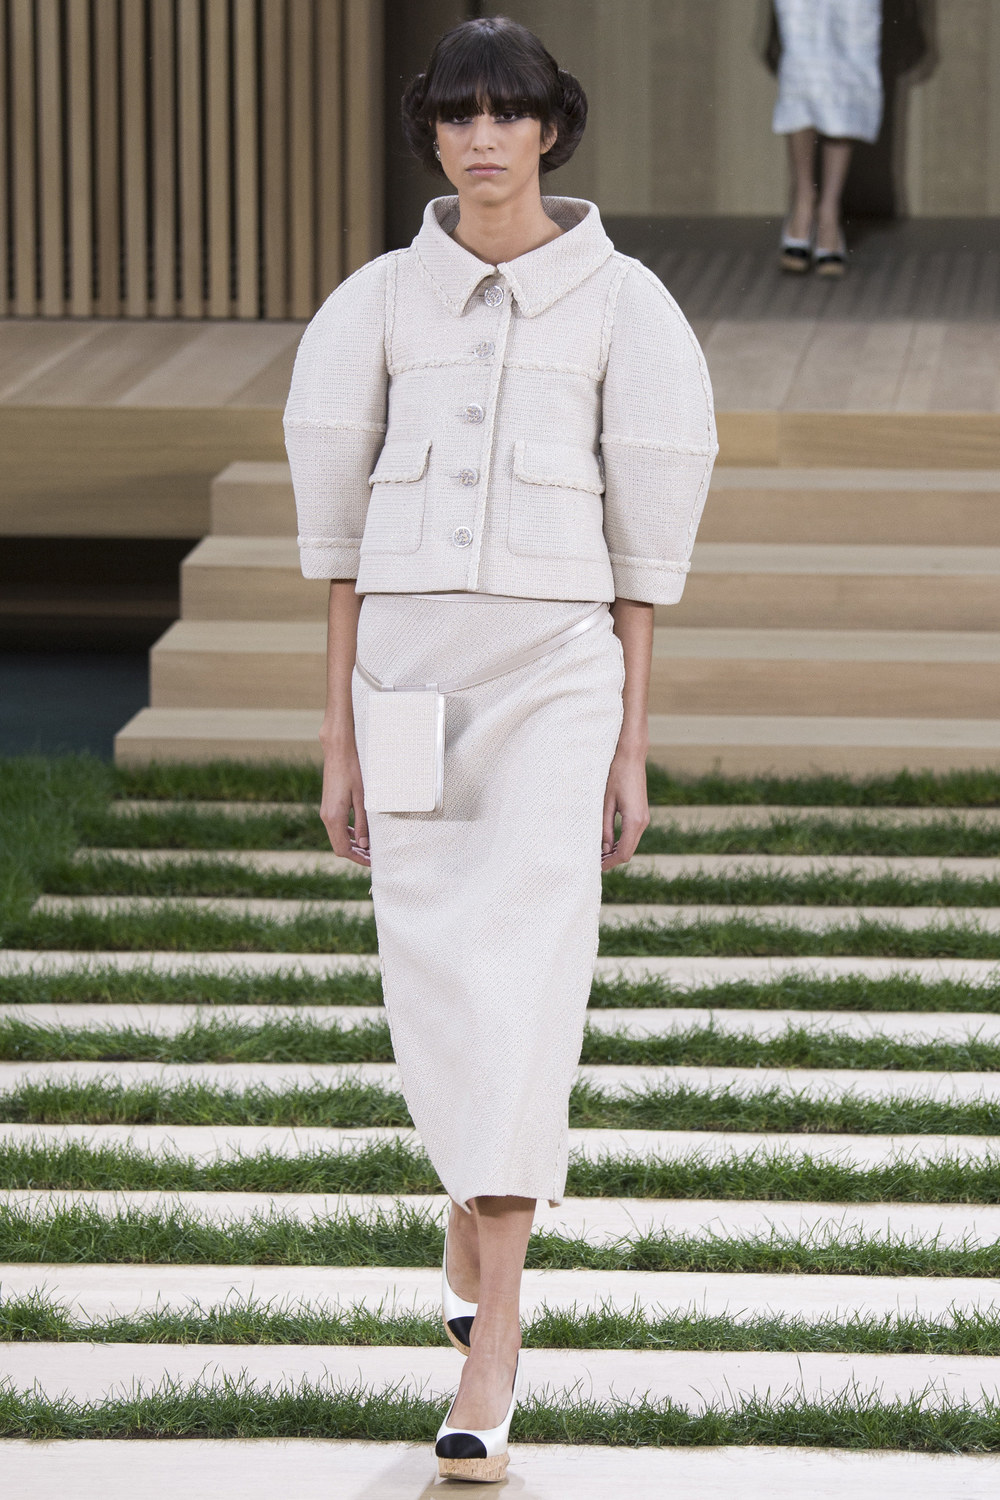 Chanel-Couture-Spring-2016-Paris-Fashion-Week-1.jpg